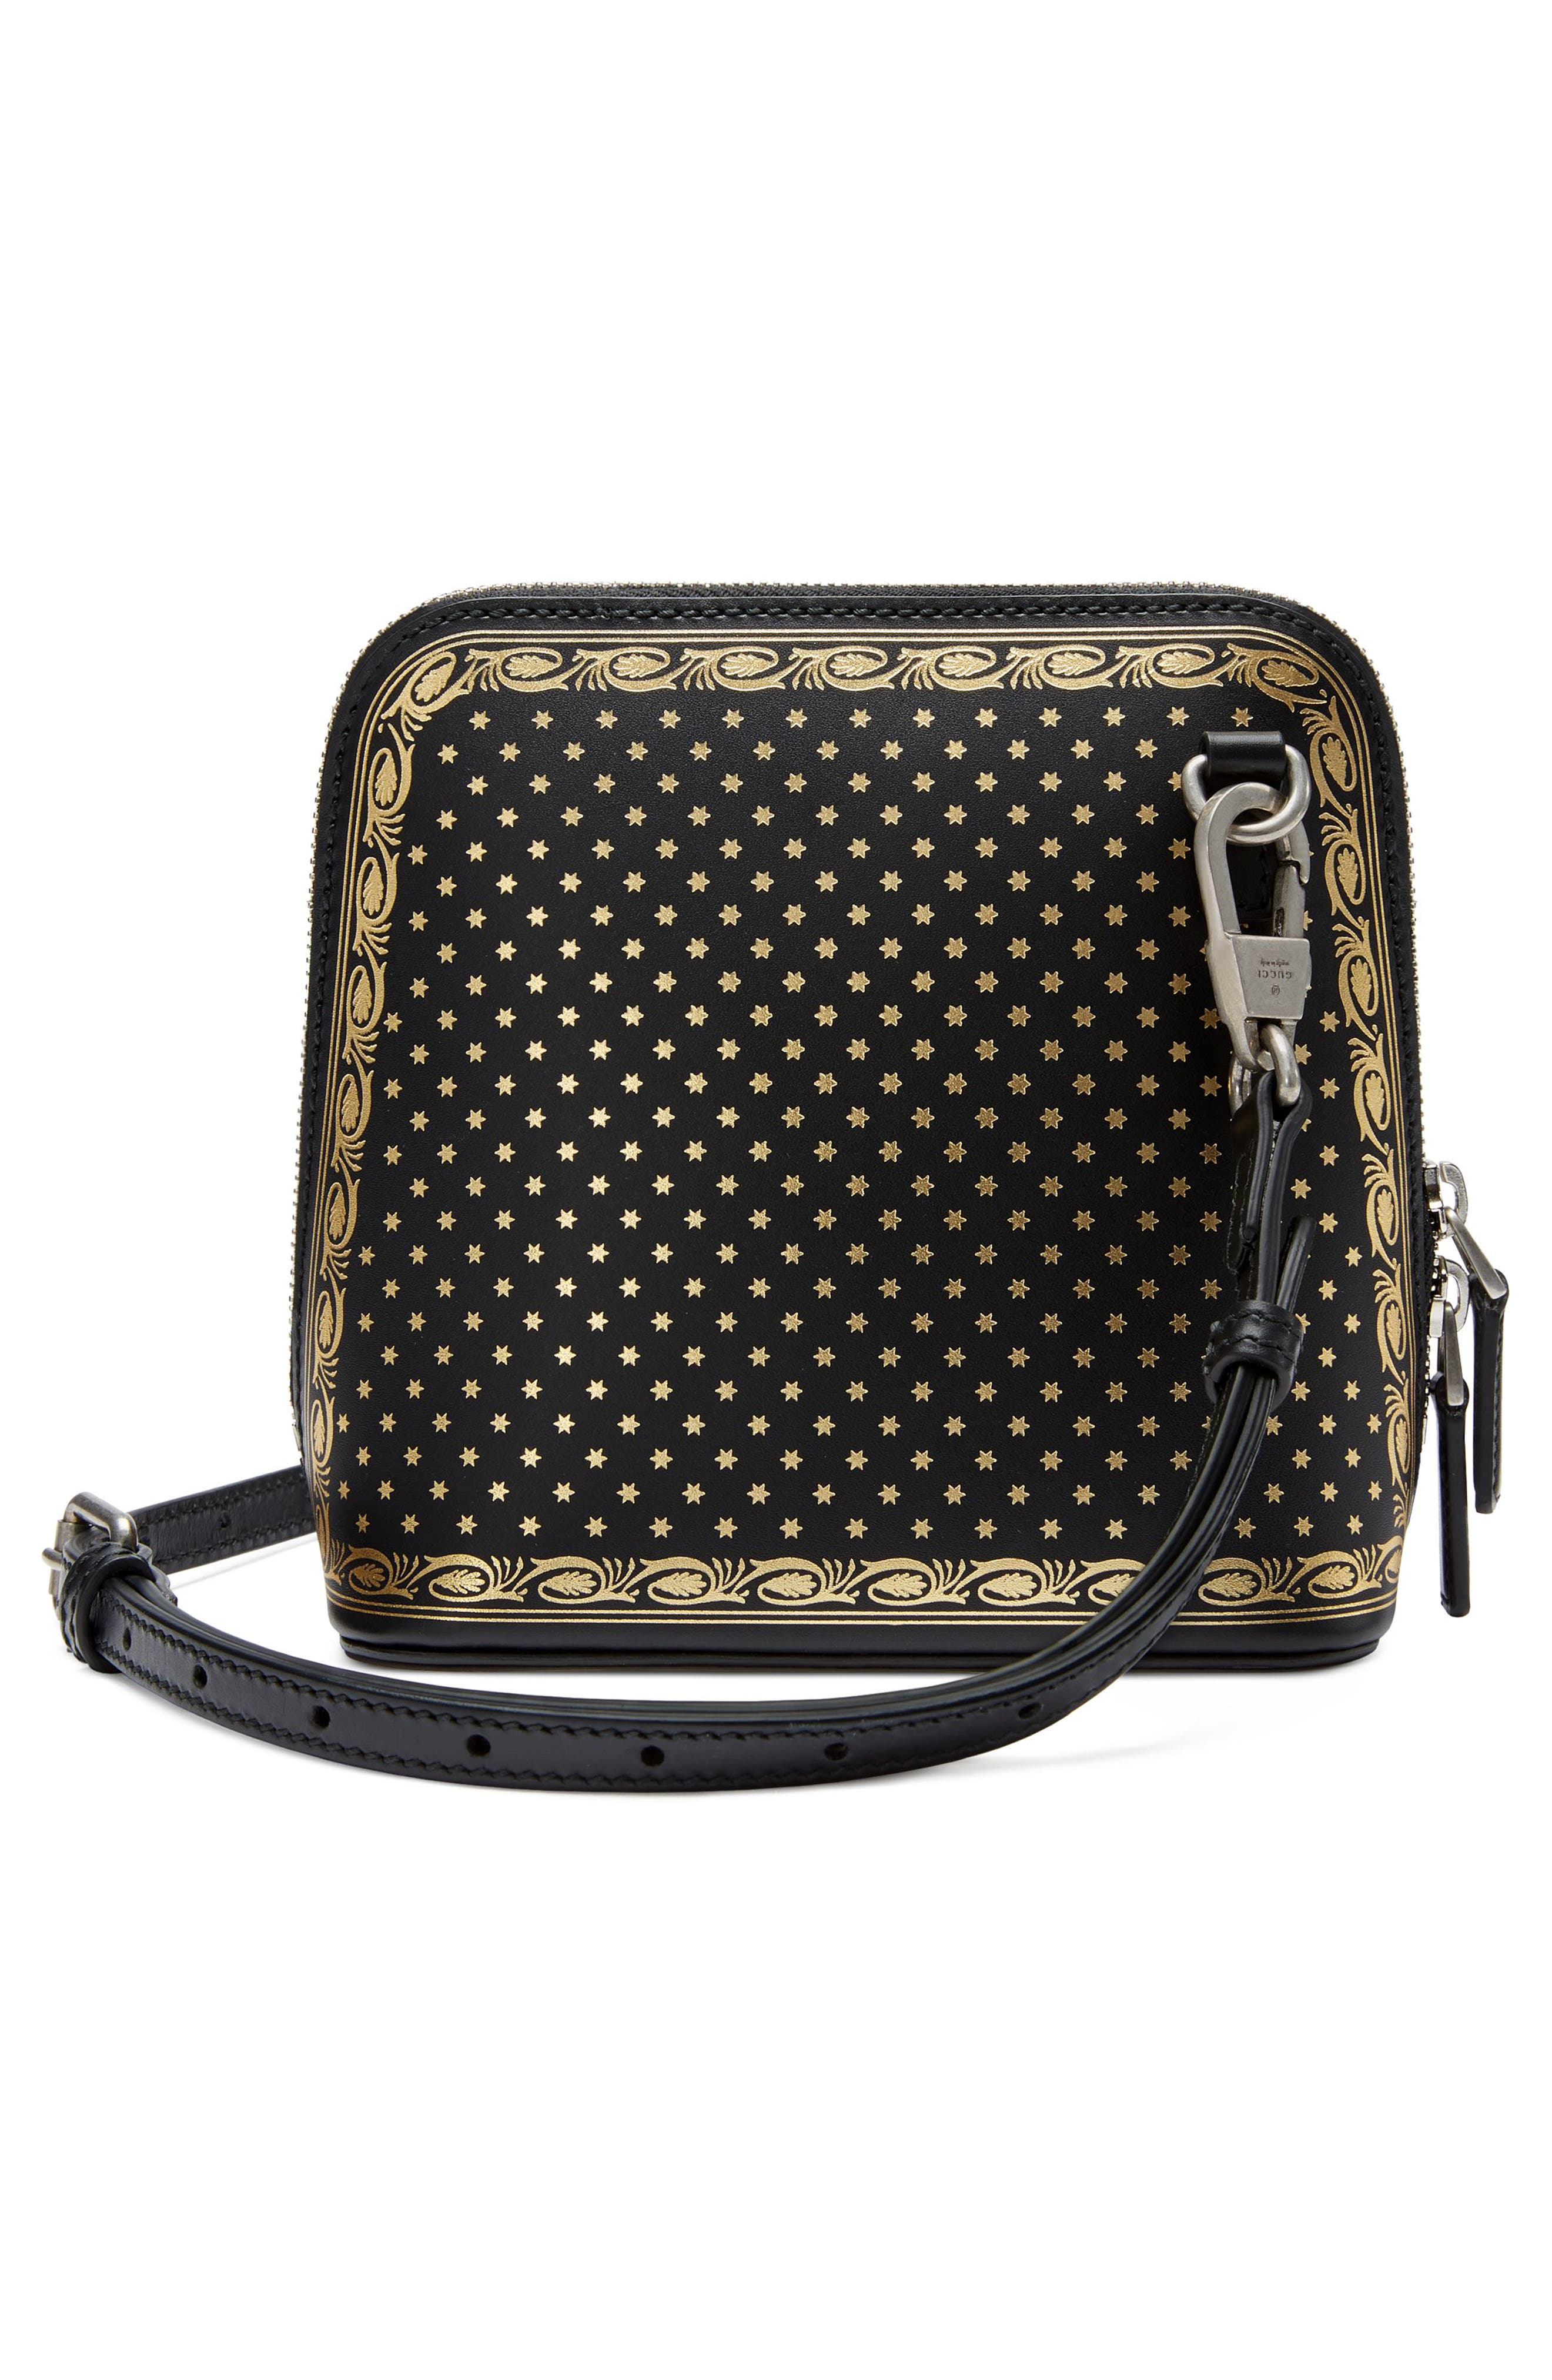 Guccy Logo Moon & Stars Leather Crossbody Bag,                             Alternate thumbnail 2, color,                             NERO/ ORO